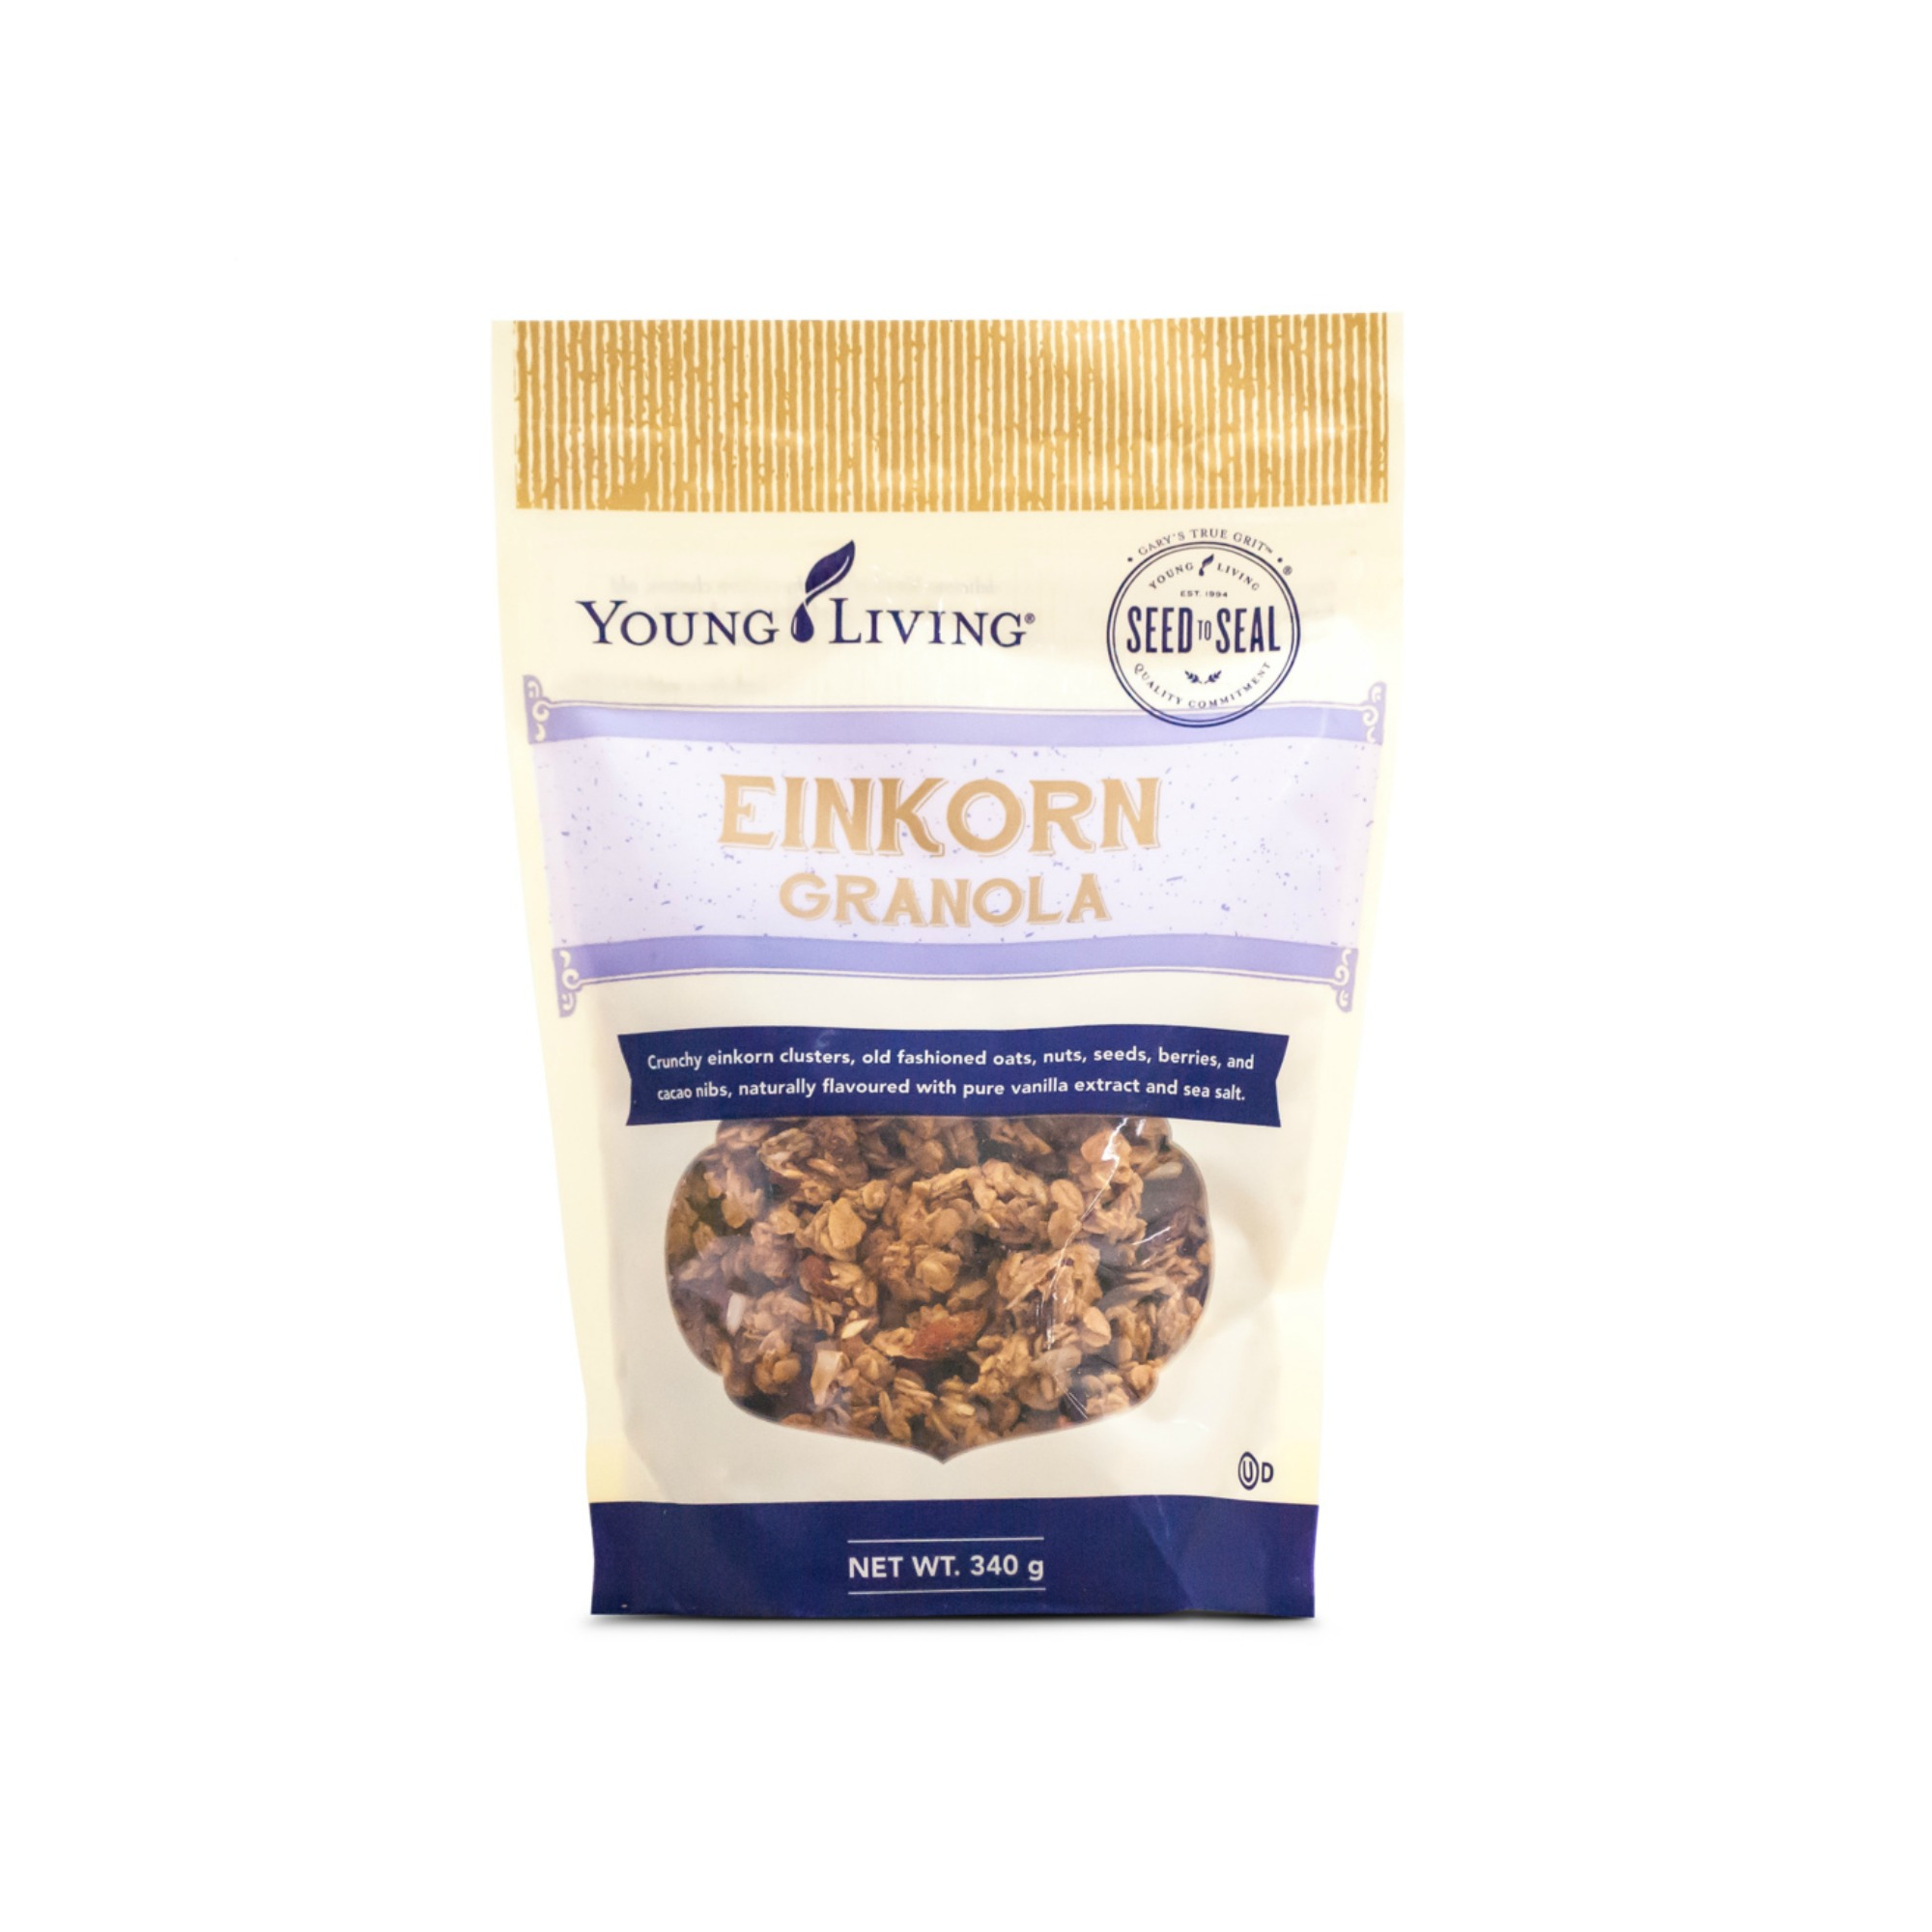 EINKORN GRANOLA    Served hot or cold, Gary's True Grit™ Einkorn Granola is a great way to start your day. The tasty combination of naturally sourced grains, nuts, berries, and seeds provides both simple and complex carbs to keep you going through the day. With crunchy clusters mixed with chewy dried wolfberries, this granola is perfect to pack along with you no matter where you go!   Click here   to learn more about this product.